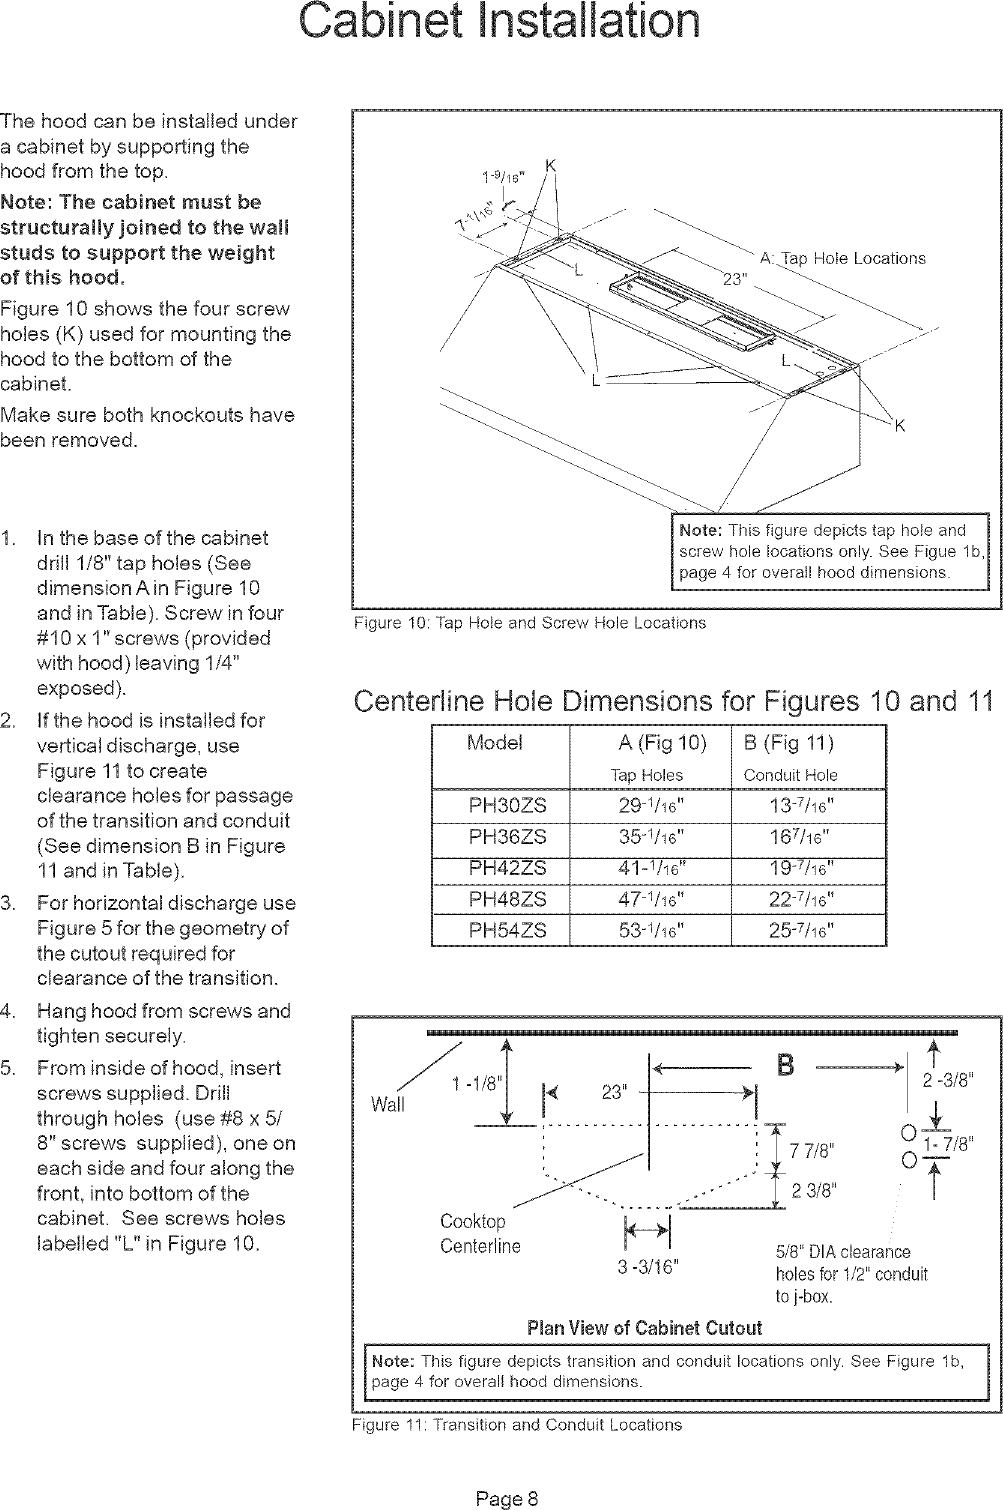 Thermador Range Hood Manual L0512045 Wiring Diagram Page 8 Of 12